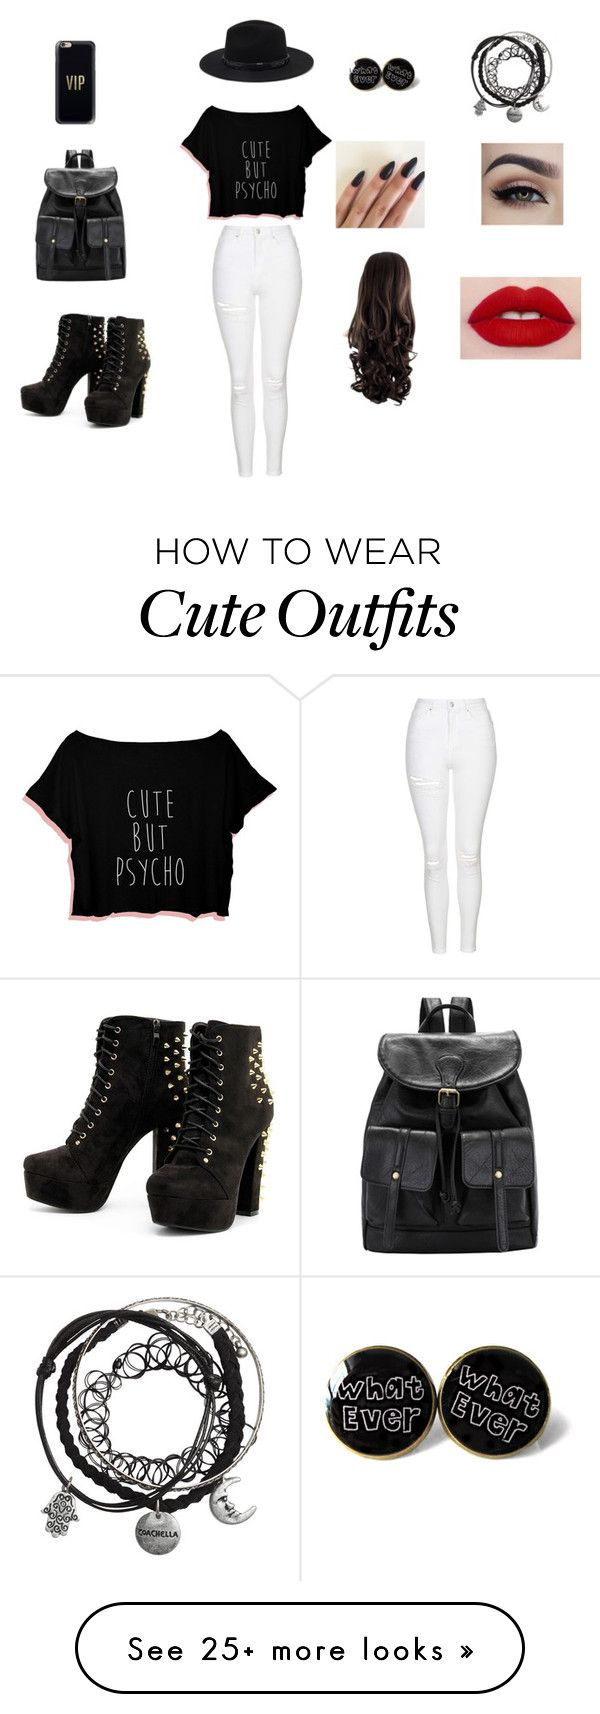 """outfit #1"" by lola456-680 on Polyvore featuring Topshop, Forever 21 and Casetify"